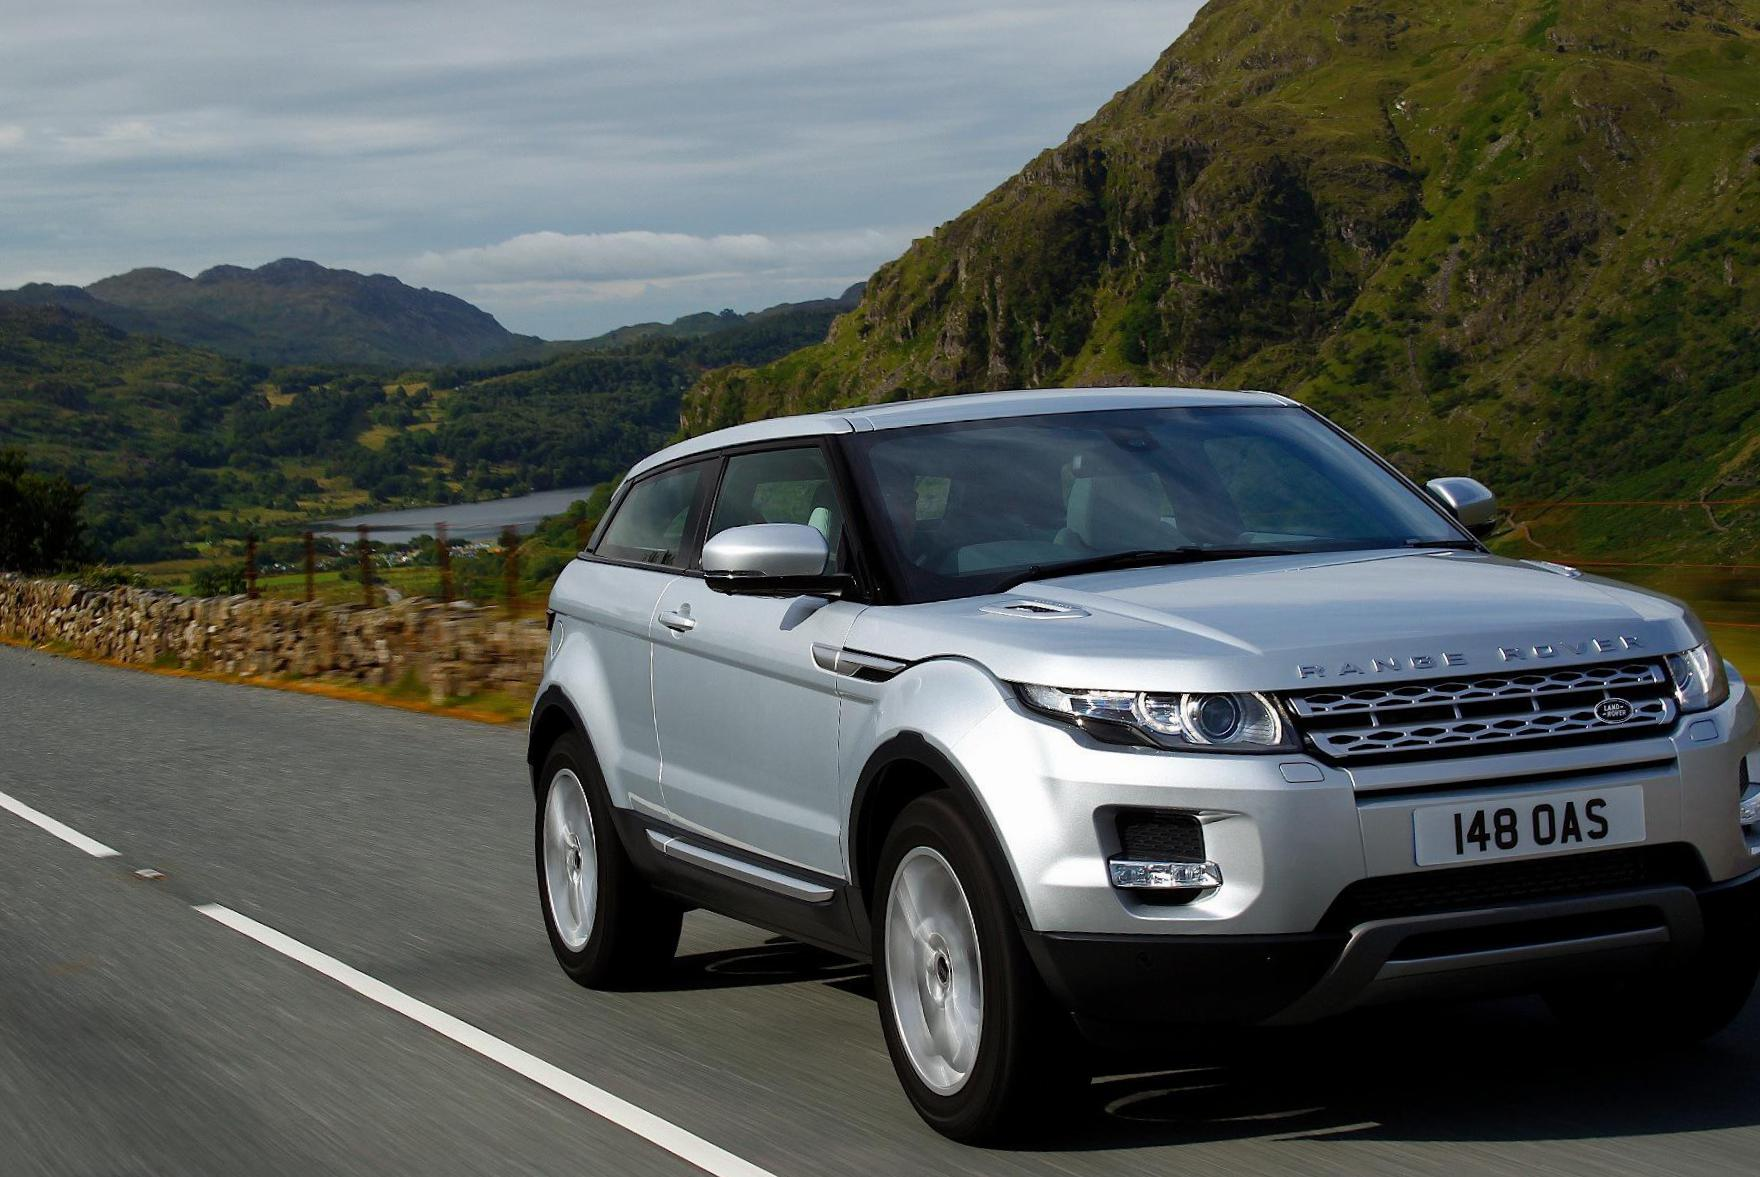 Land Rover Range Rover Evoque Coupe specs sedan